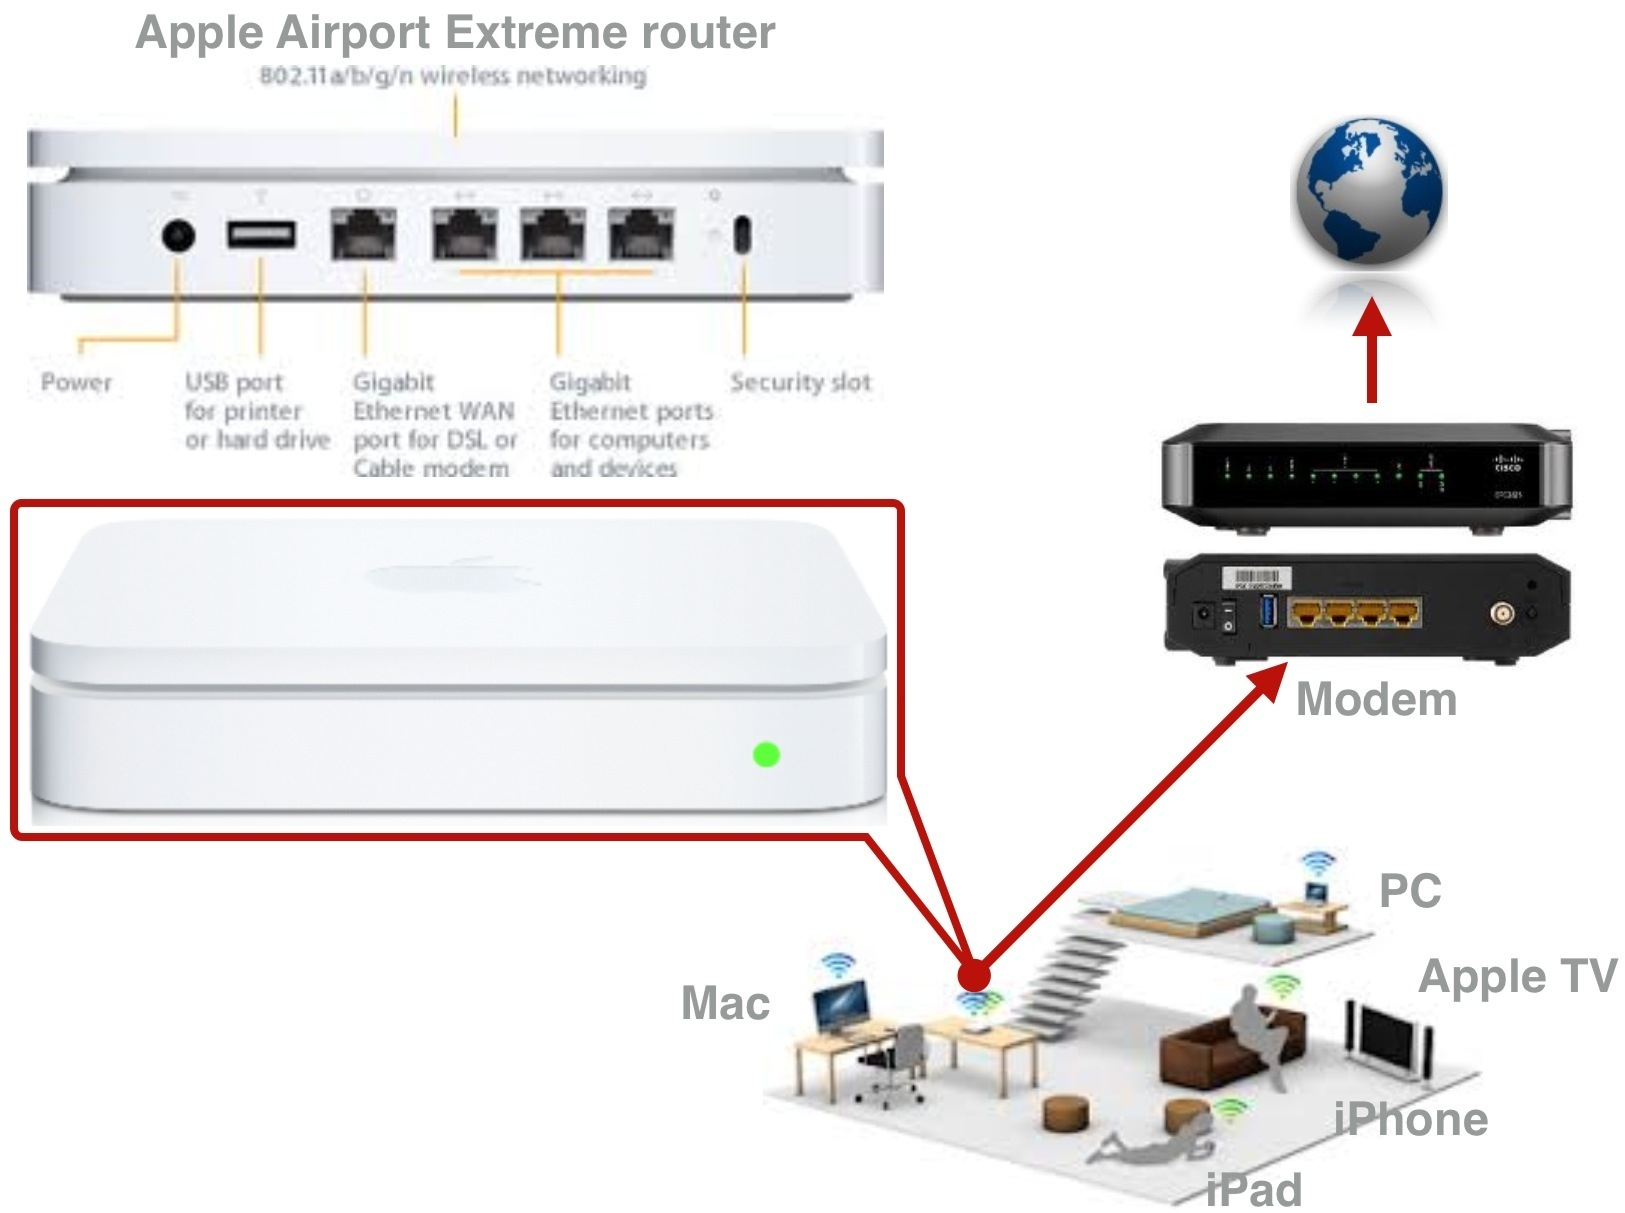 network 2 apple airport router inotes4you rh inotes4you com Apple Airport Connections Apple Airport Extreme Visio Stencils